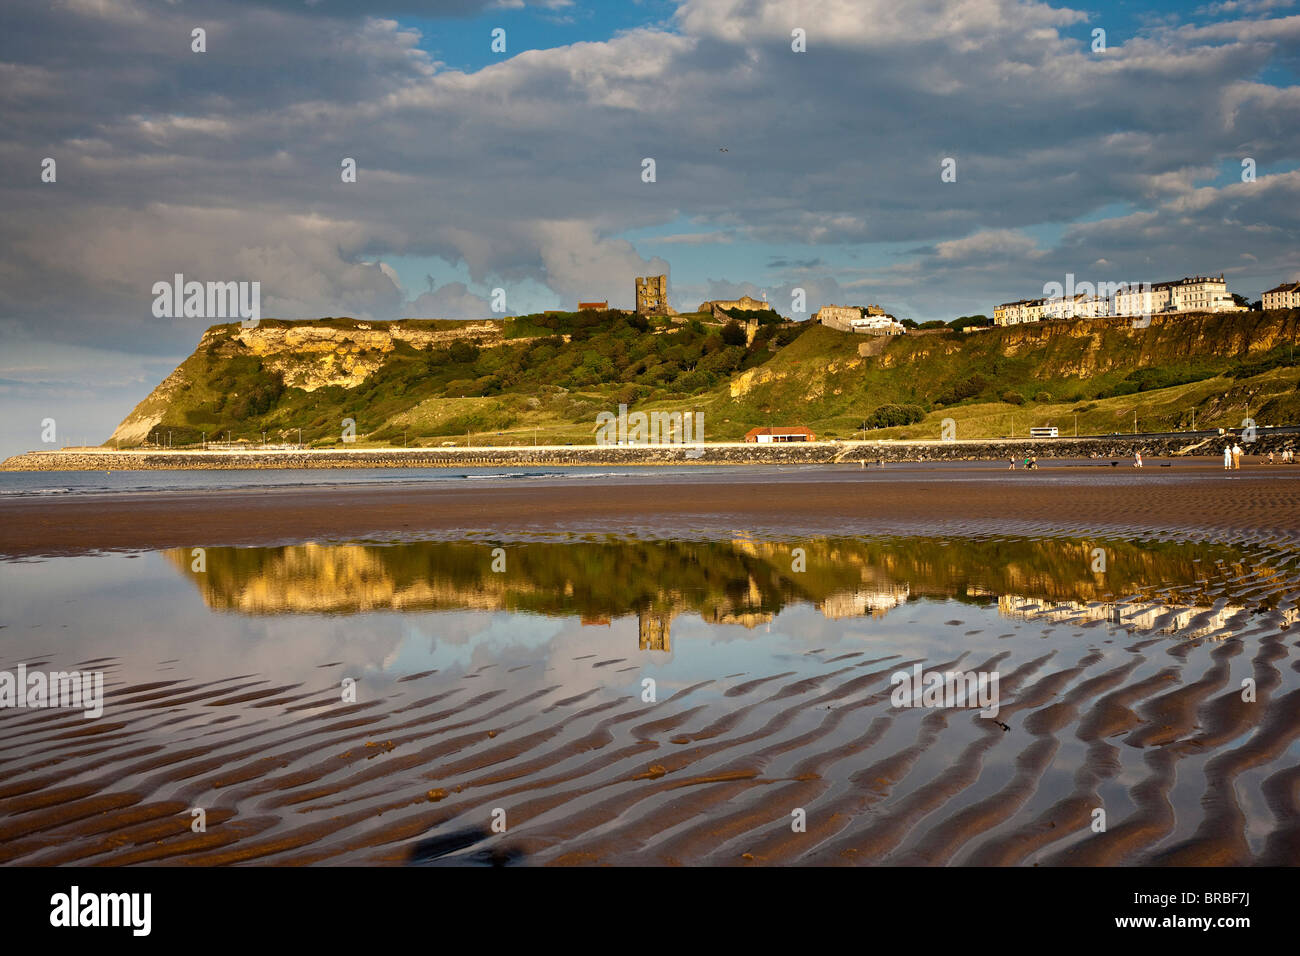 North Bay and Castle Headland, Scarborough, North Yorkshire - Stock Image